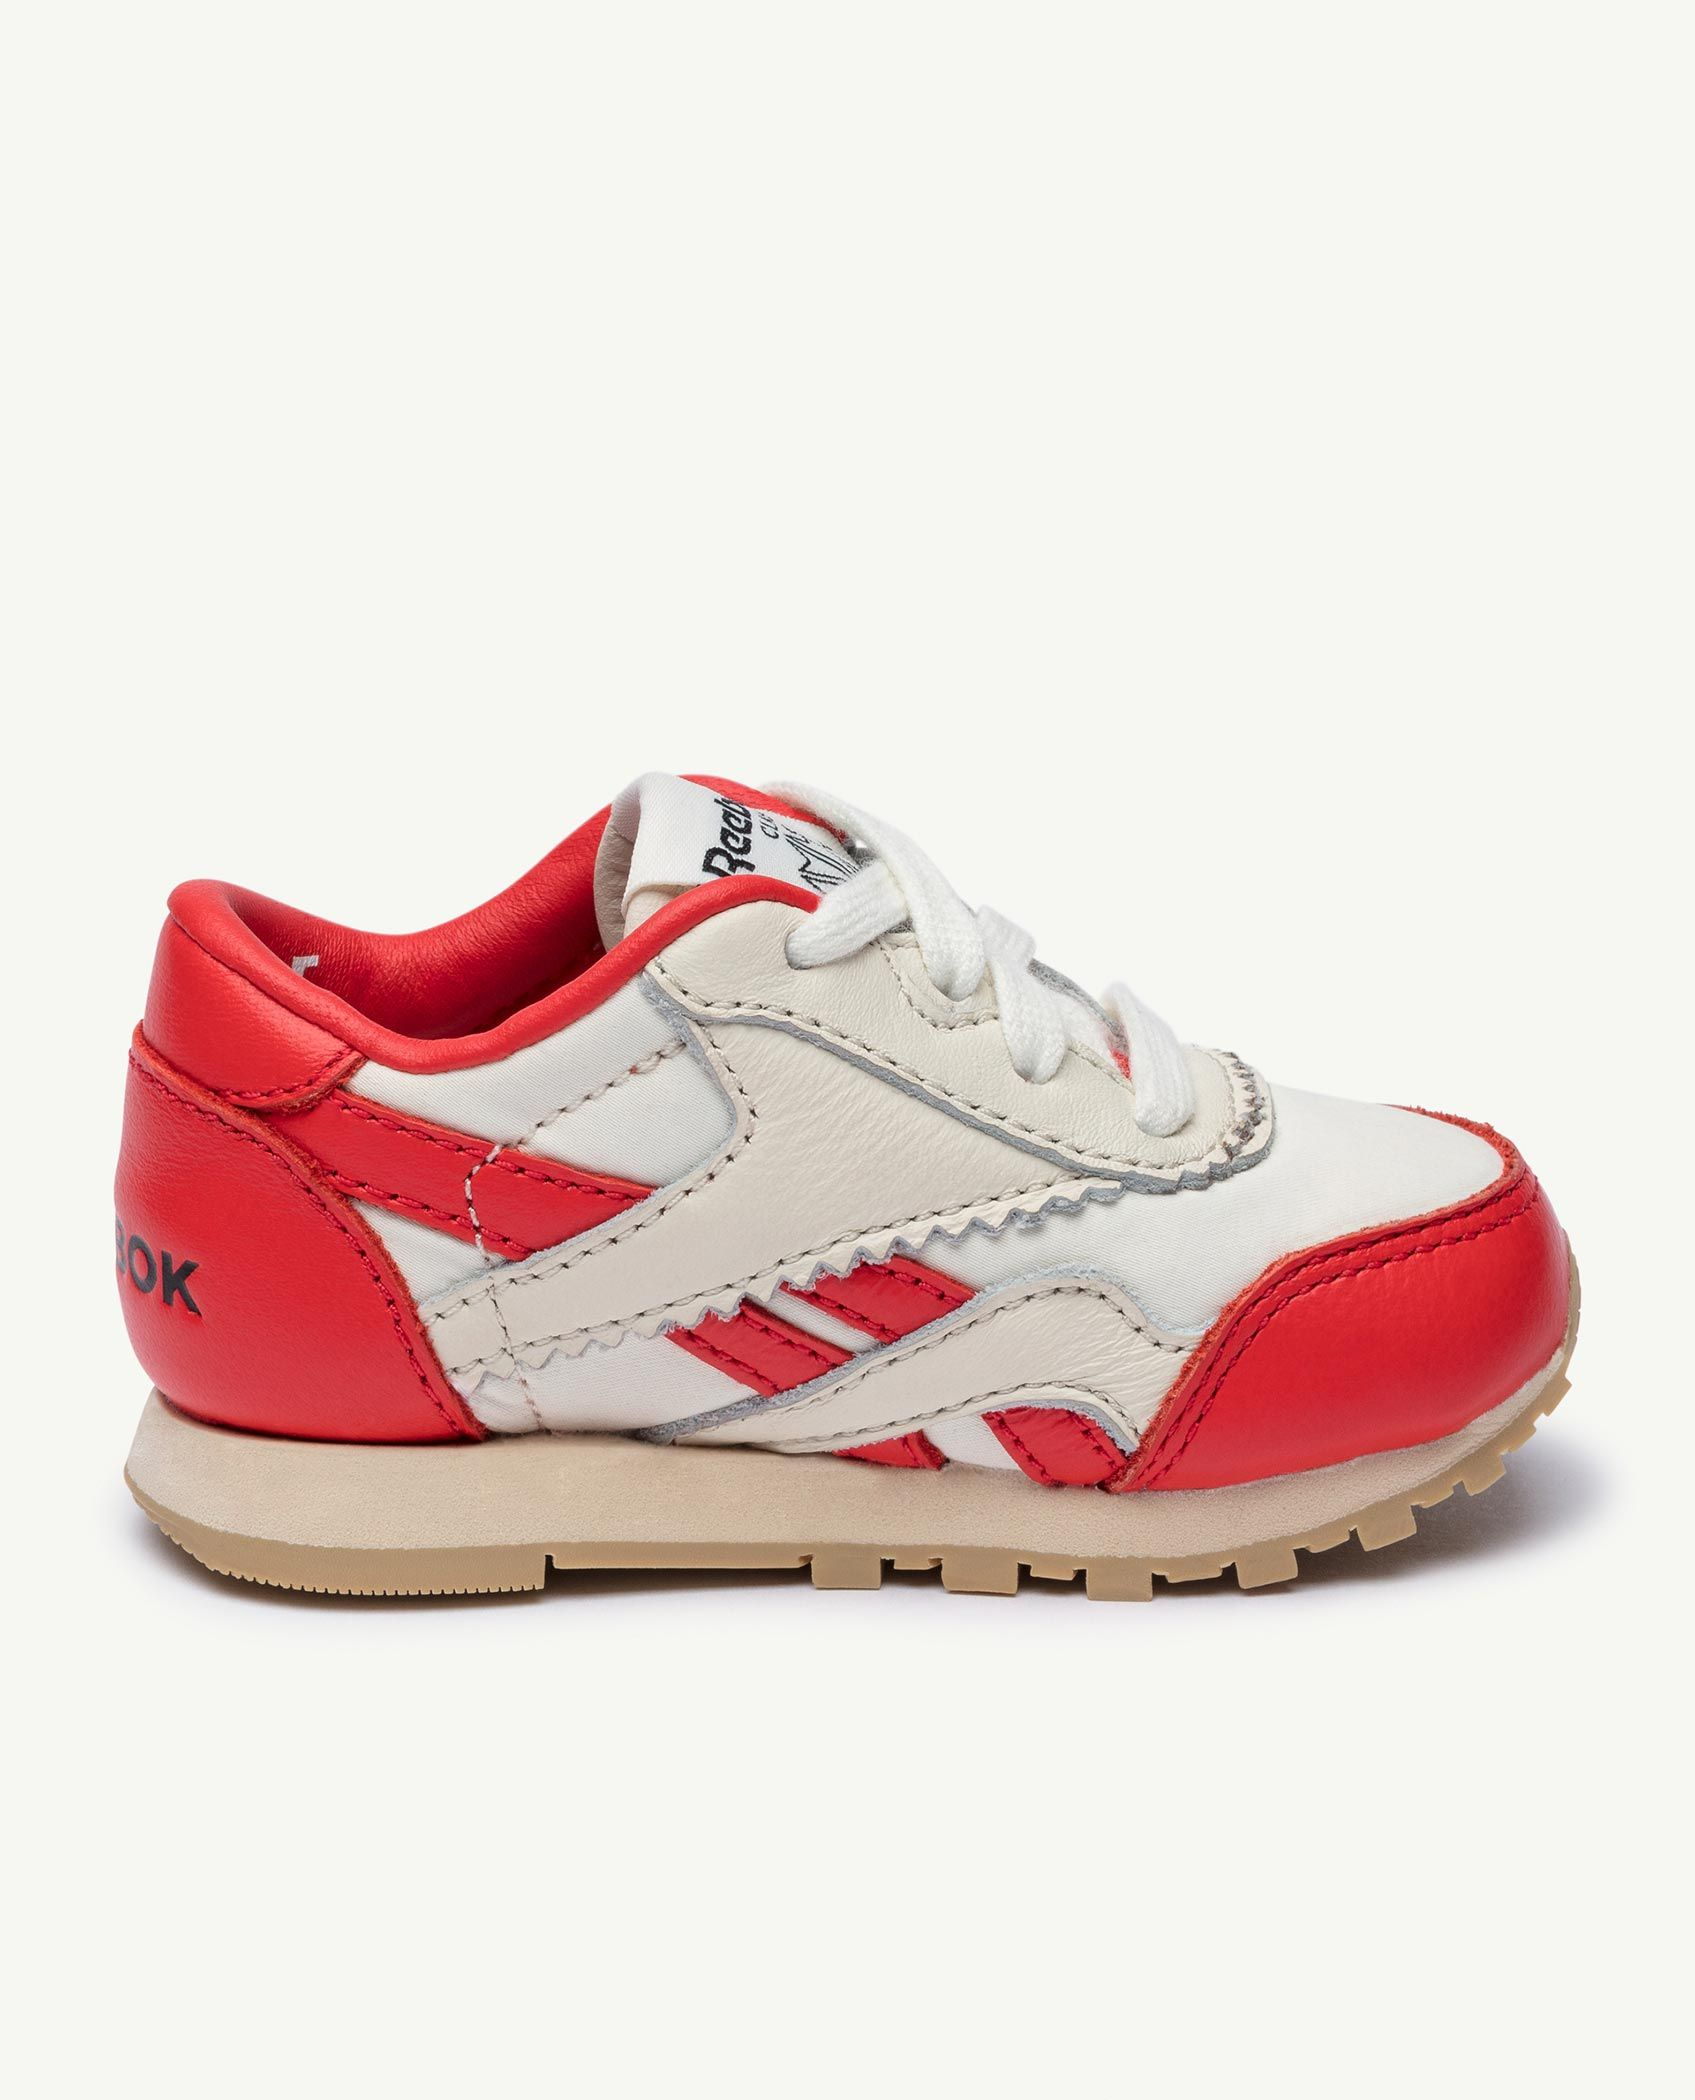 Reebok x The Animals Observatory Classic Nylon Red Baby img-2